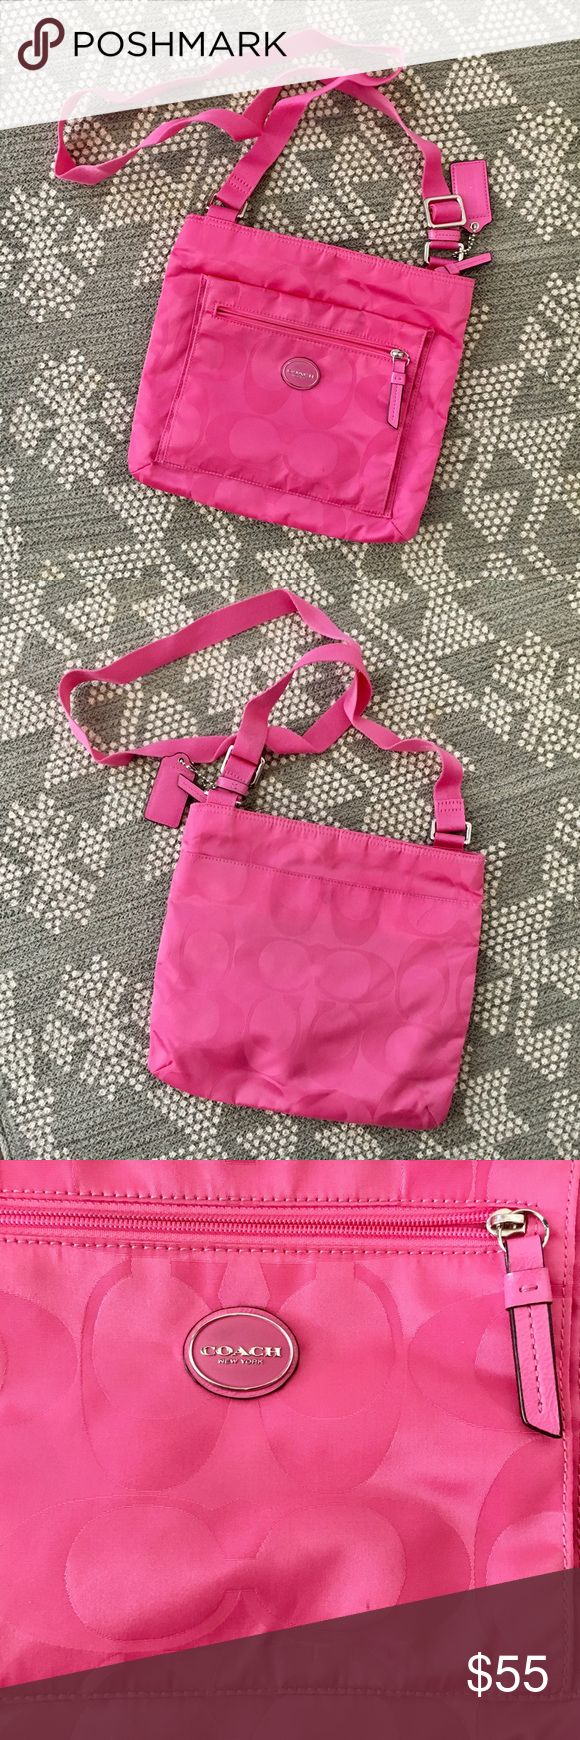 Hot pink cross body Coach purse It is gently used! There are some dark marks from rubbing on jeans on the back of the bag, near the magnet button on the back pocket. Also has some darker spots from being in storage while we moved. Pictures show all the spots! Material of the bag is easy to clean! Coach Bags Crossbody Bags